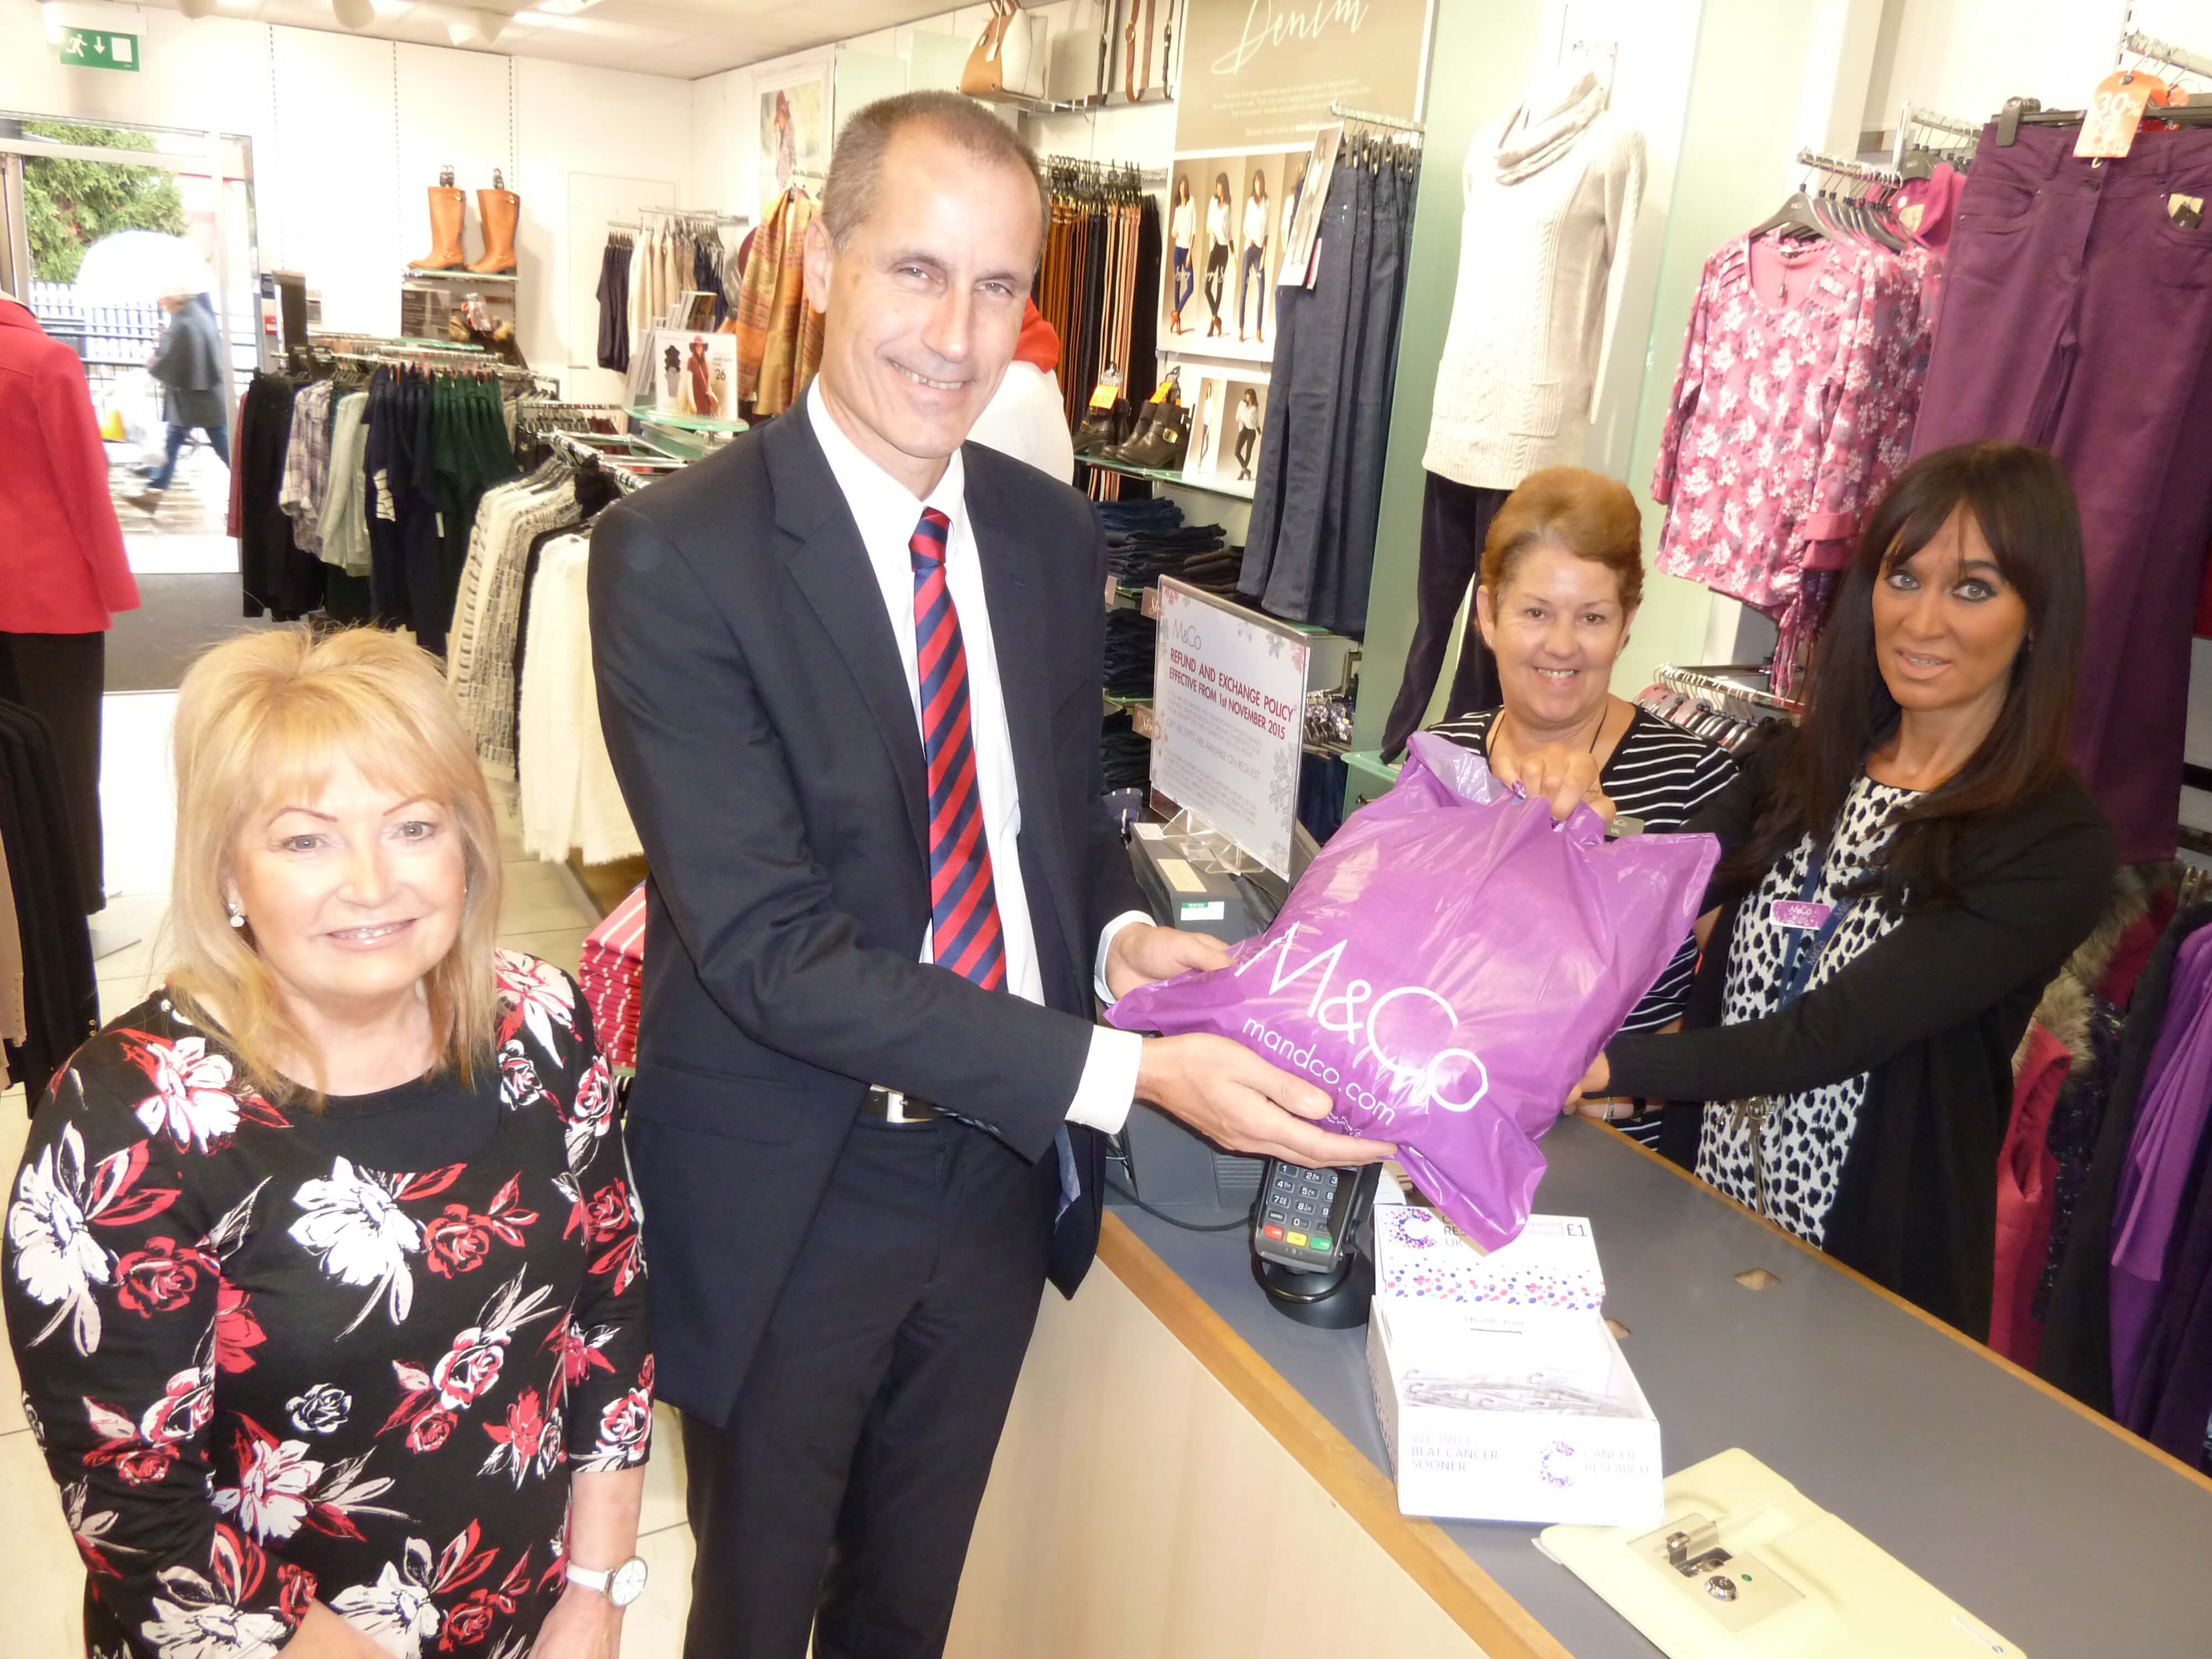 M&Co Formby's Cancer Research UK Charity Fashion Show organiser Sheila Leathley, assistant Val Saunders and store manager Sue Budworth with MP Bll Esterson.